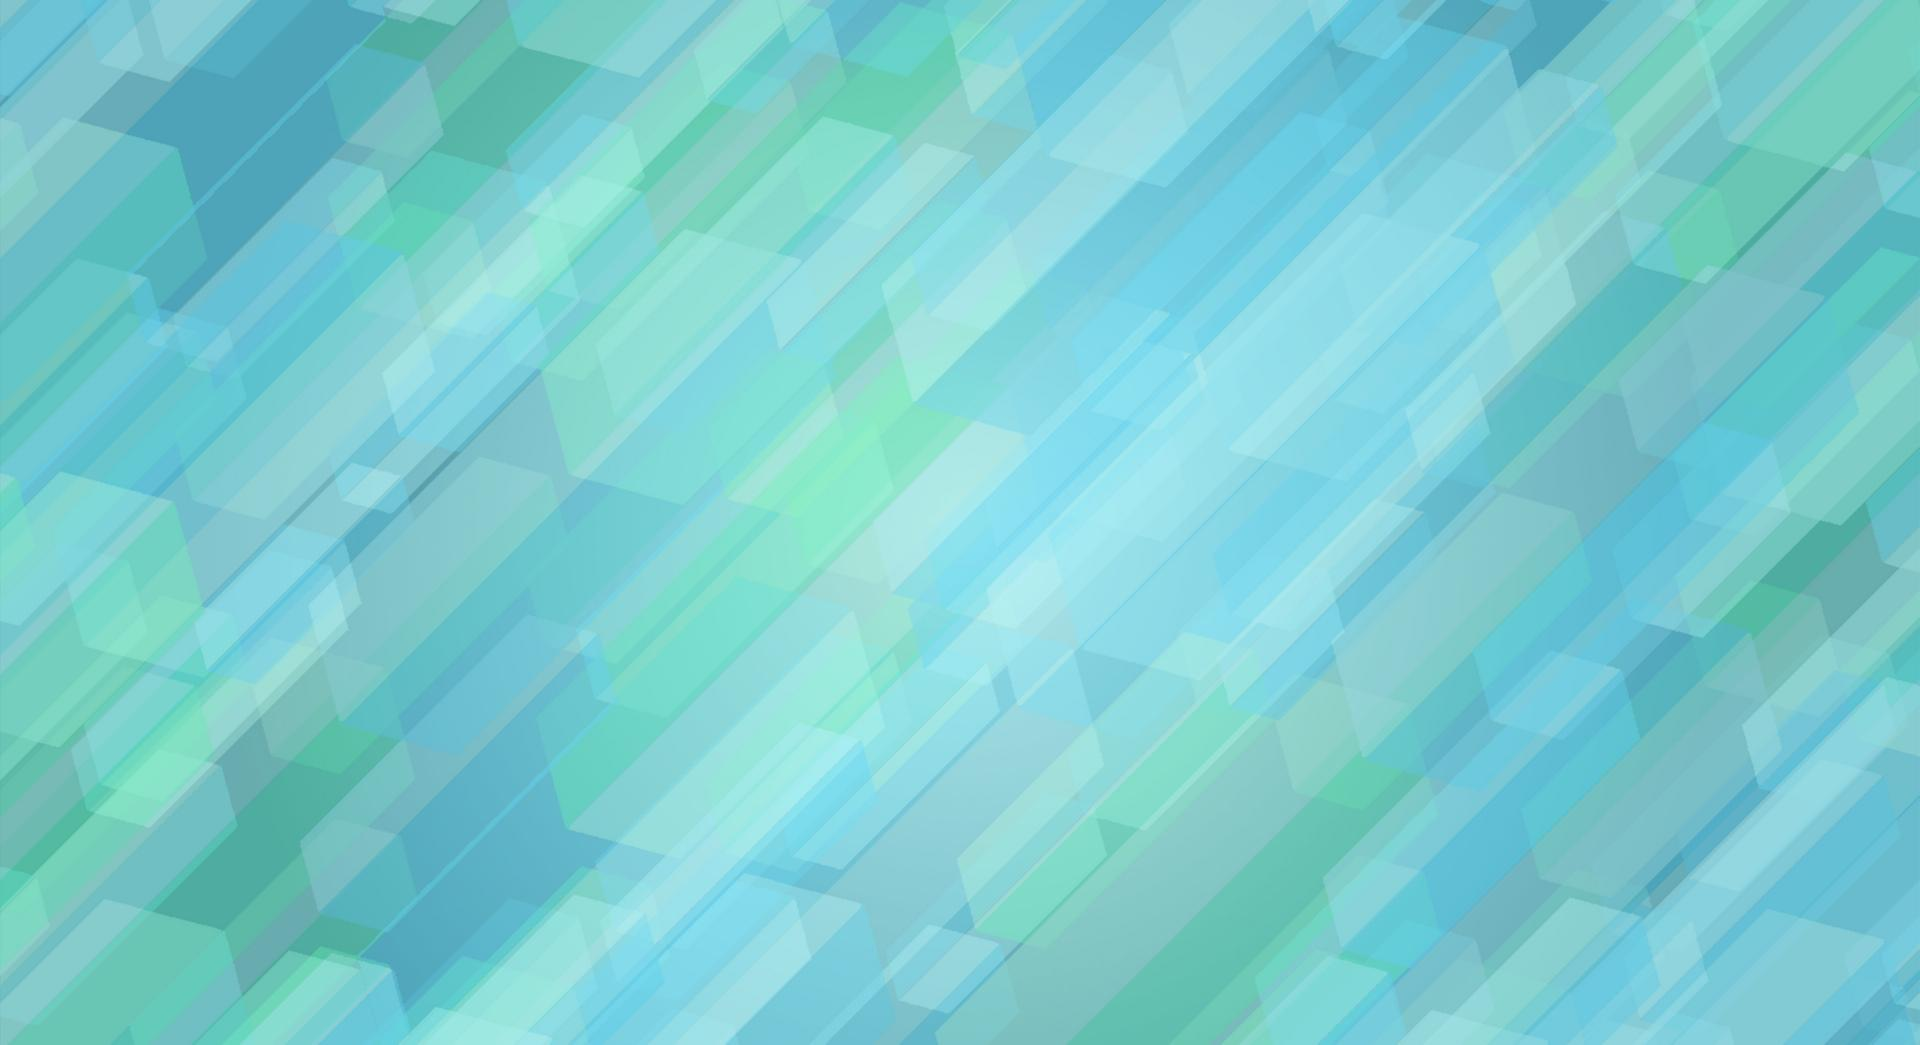 Blue and green geometrical shapes wallpapers HD quality